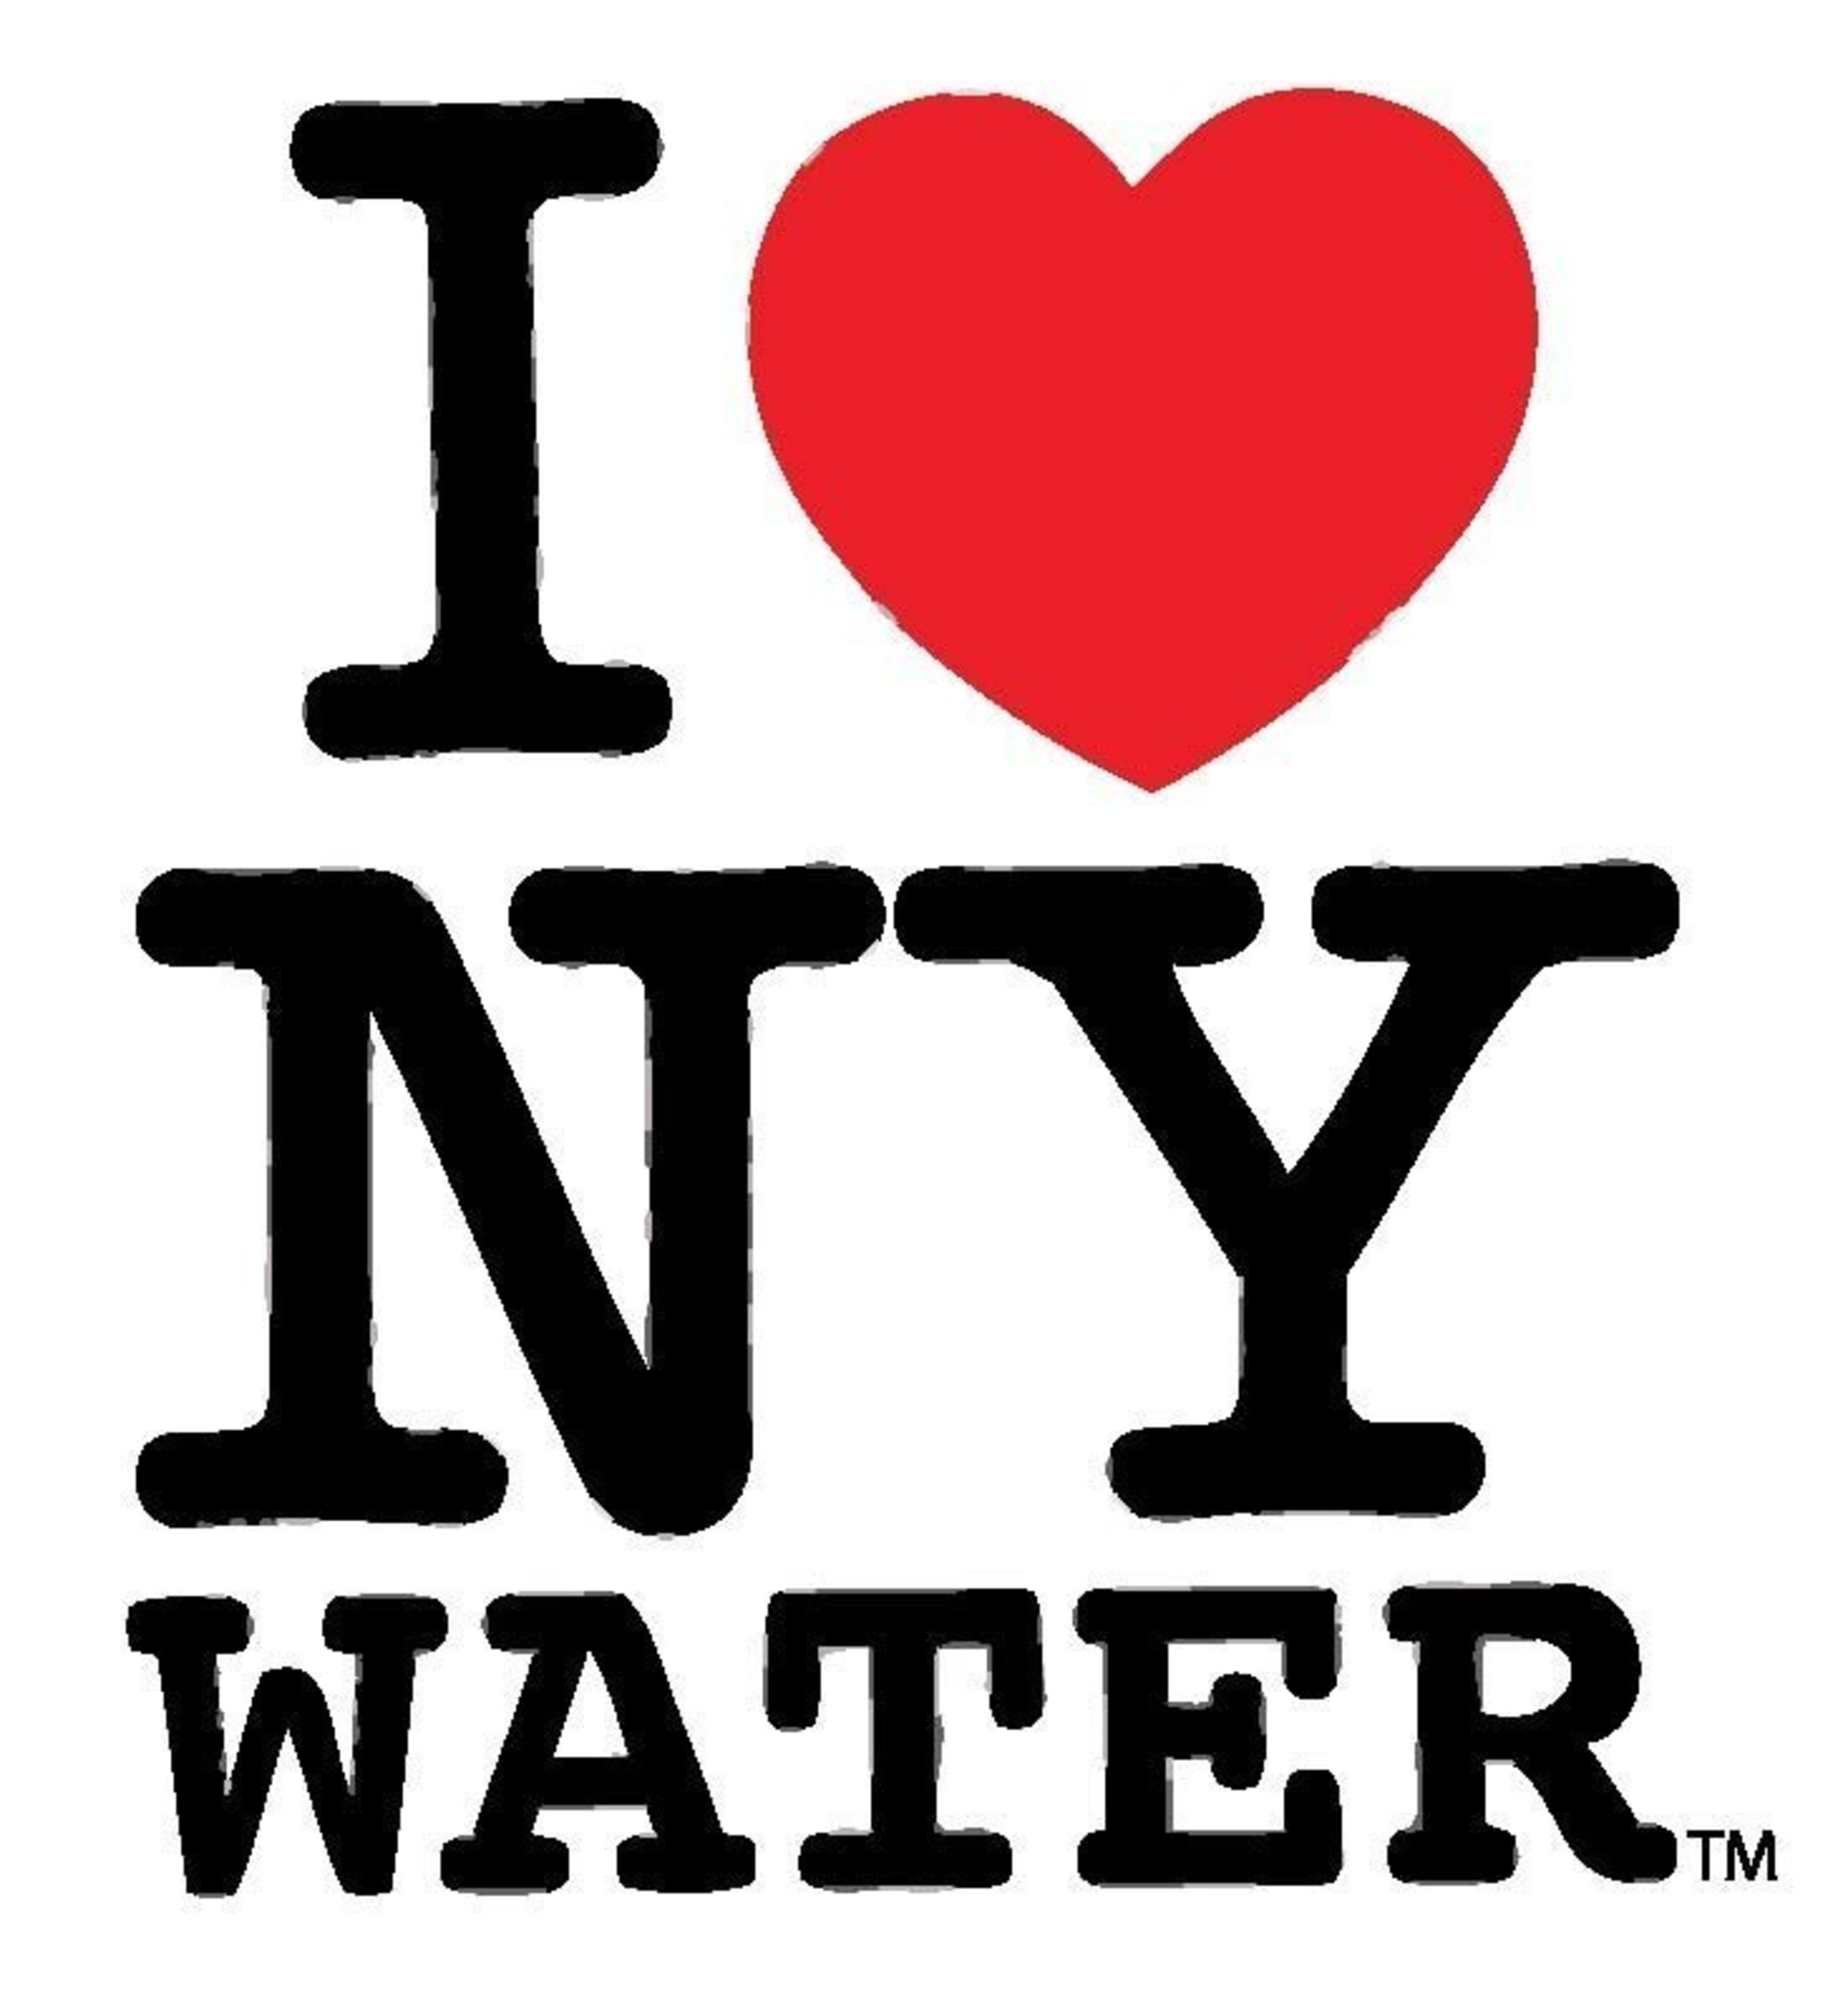 "I Love NY Water's mission is to encourage people to choose New York's tap water using a refillable water bottle every day. The initiative promotes the advantages of our state's water including its quality standards, health benefits, low cost and delicious taste. I Love New York Water has the official use of the world-renowned I ""Heart"" NY logo to help bring awareness of this important initiative."